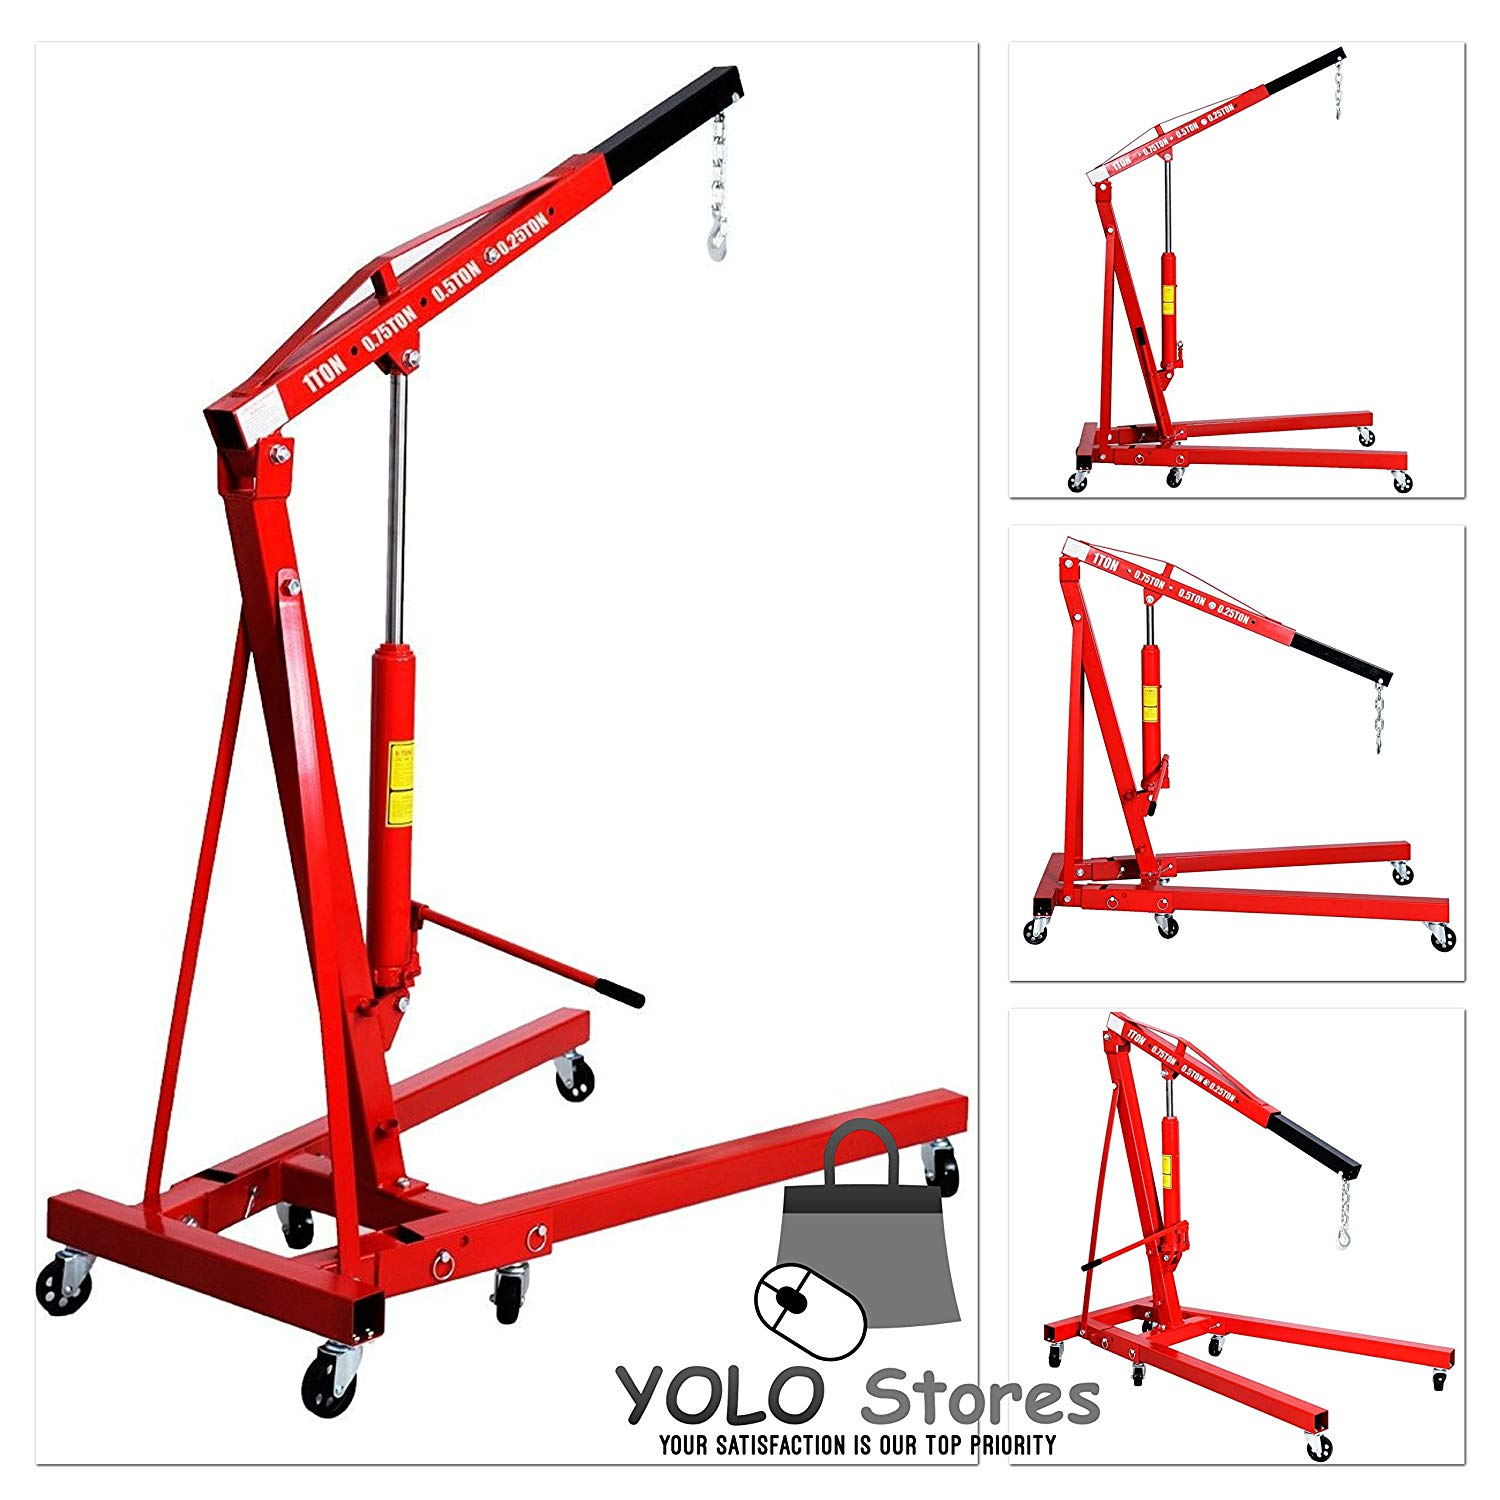 hight resolution of 1 ton folding hydraulic engine crane hoist lift stand picker wheel garage by yolo stores walmart com